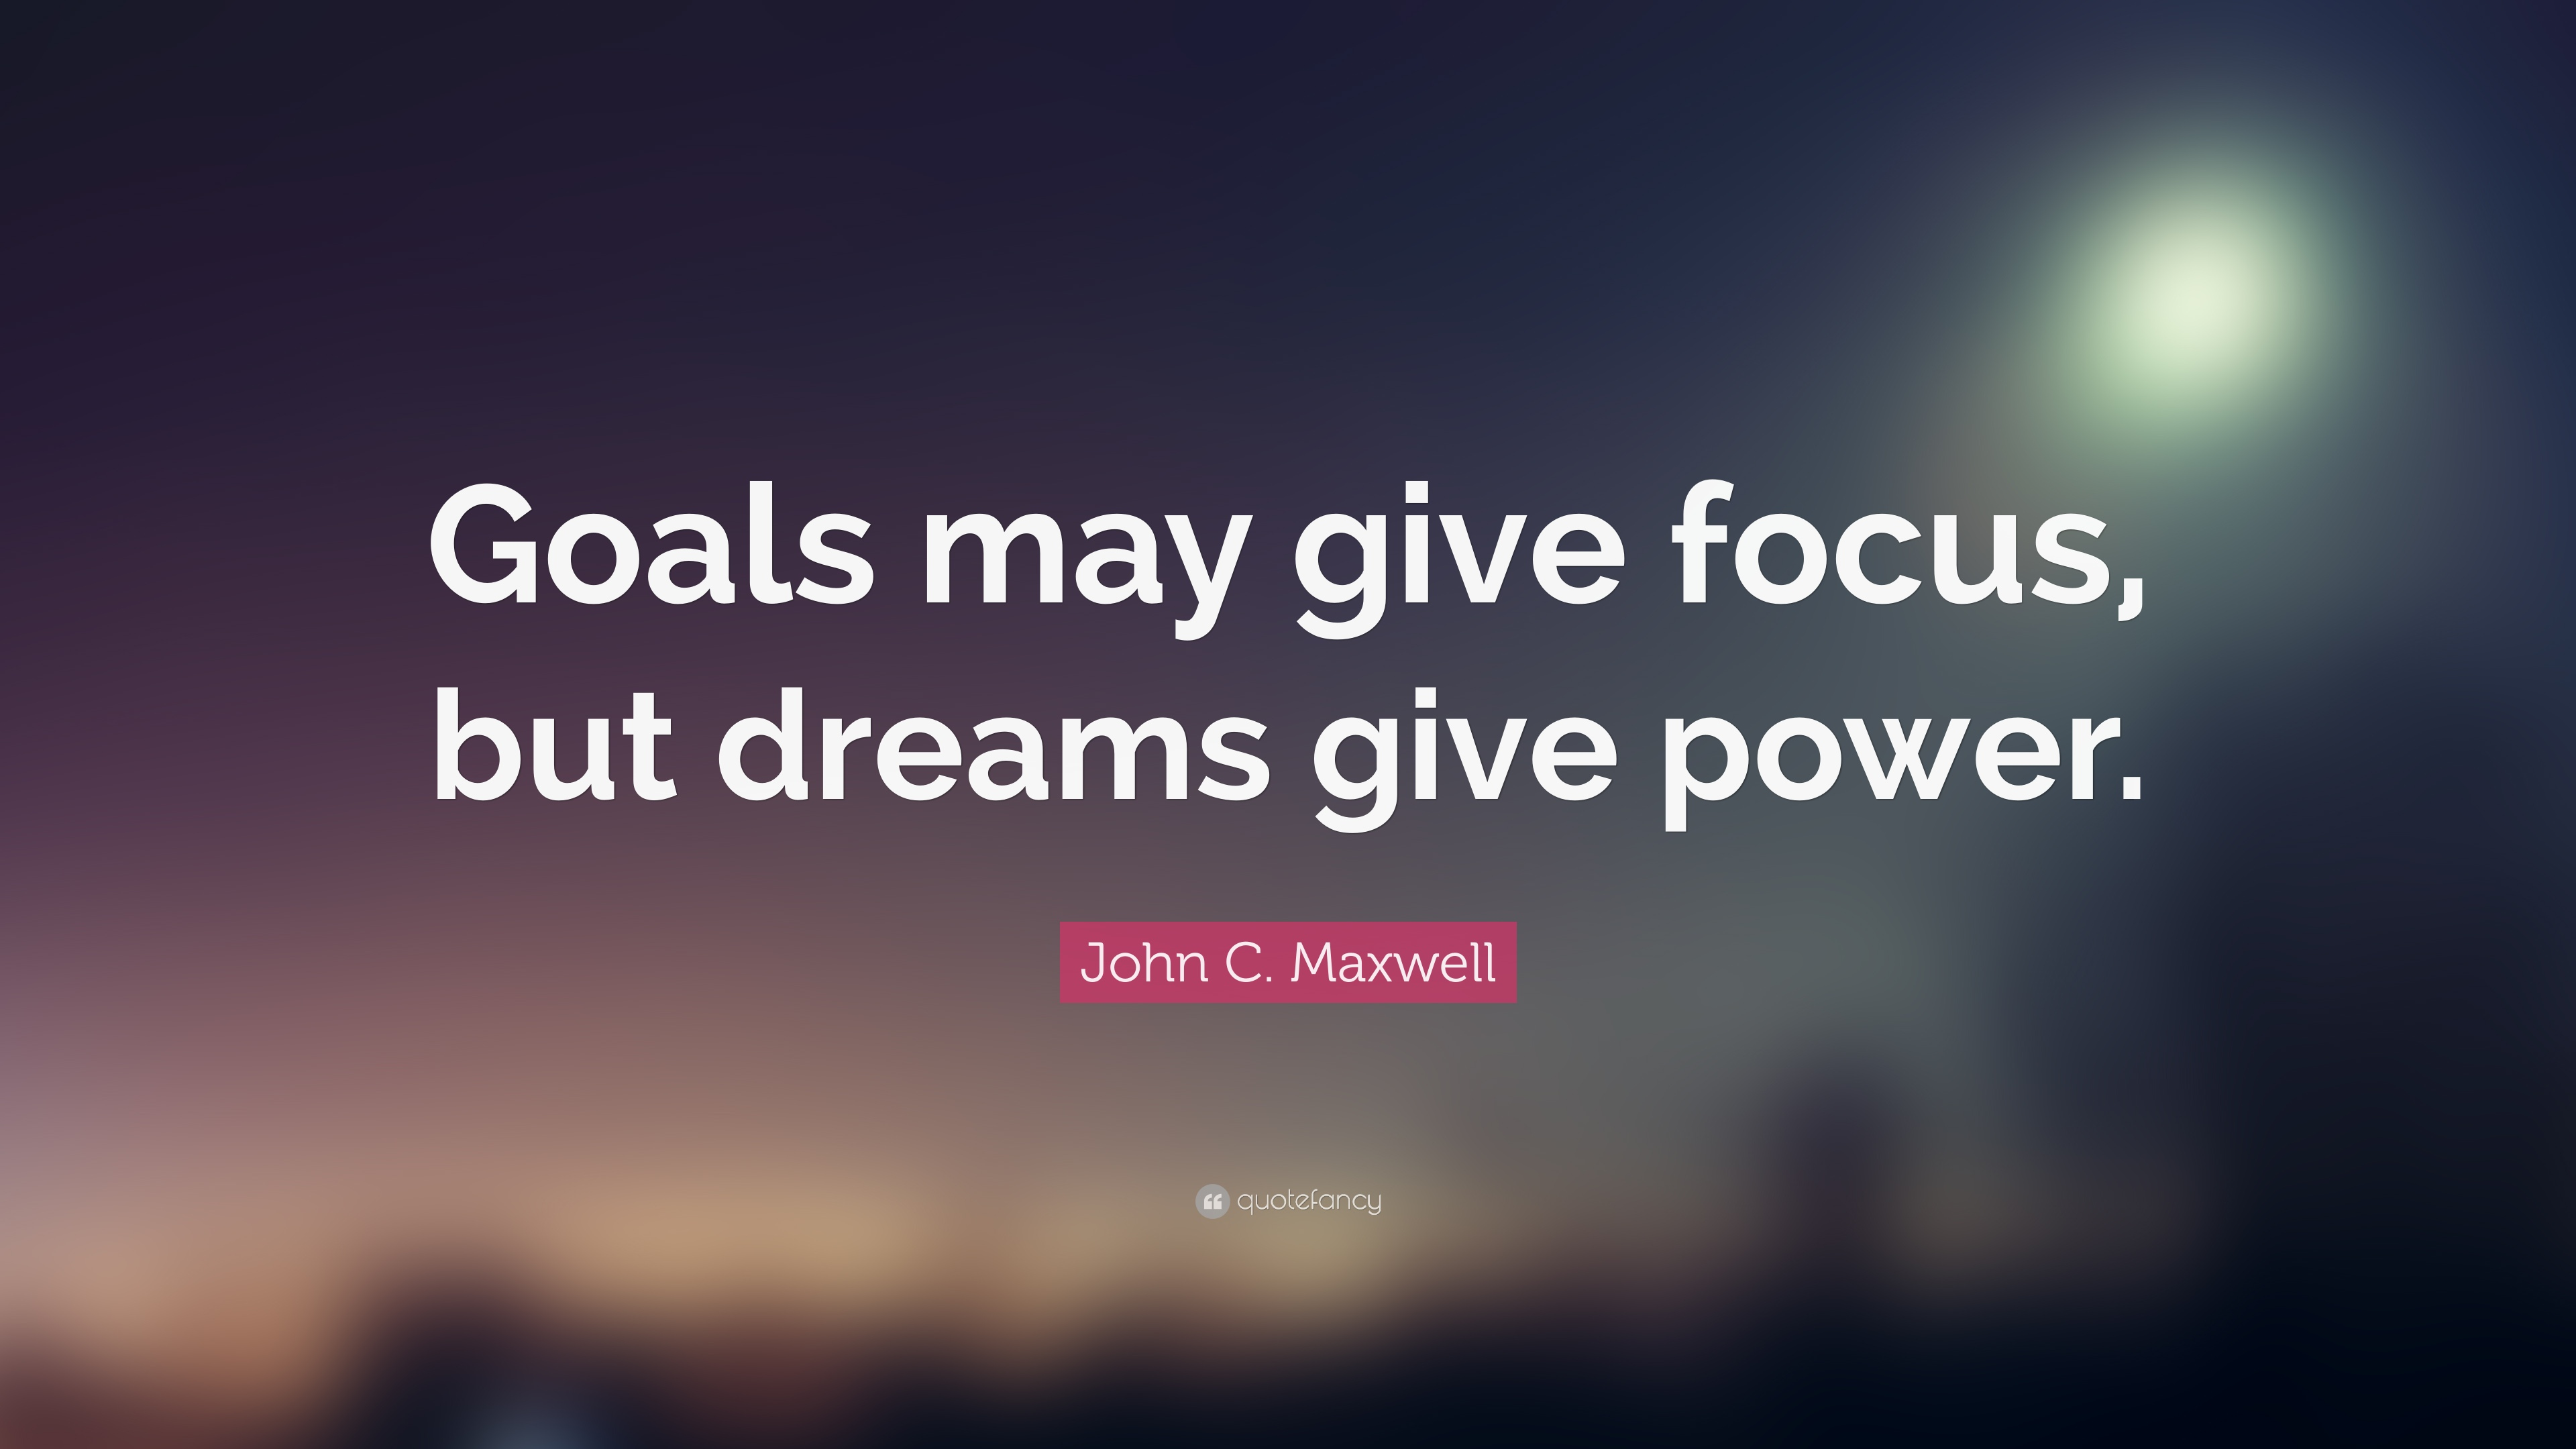 Quotes About Goals Goal Quotes 40 Wallpapers  Quotefancy